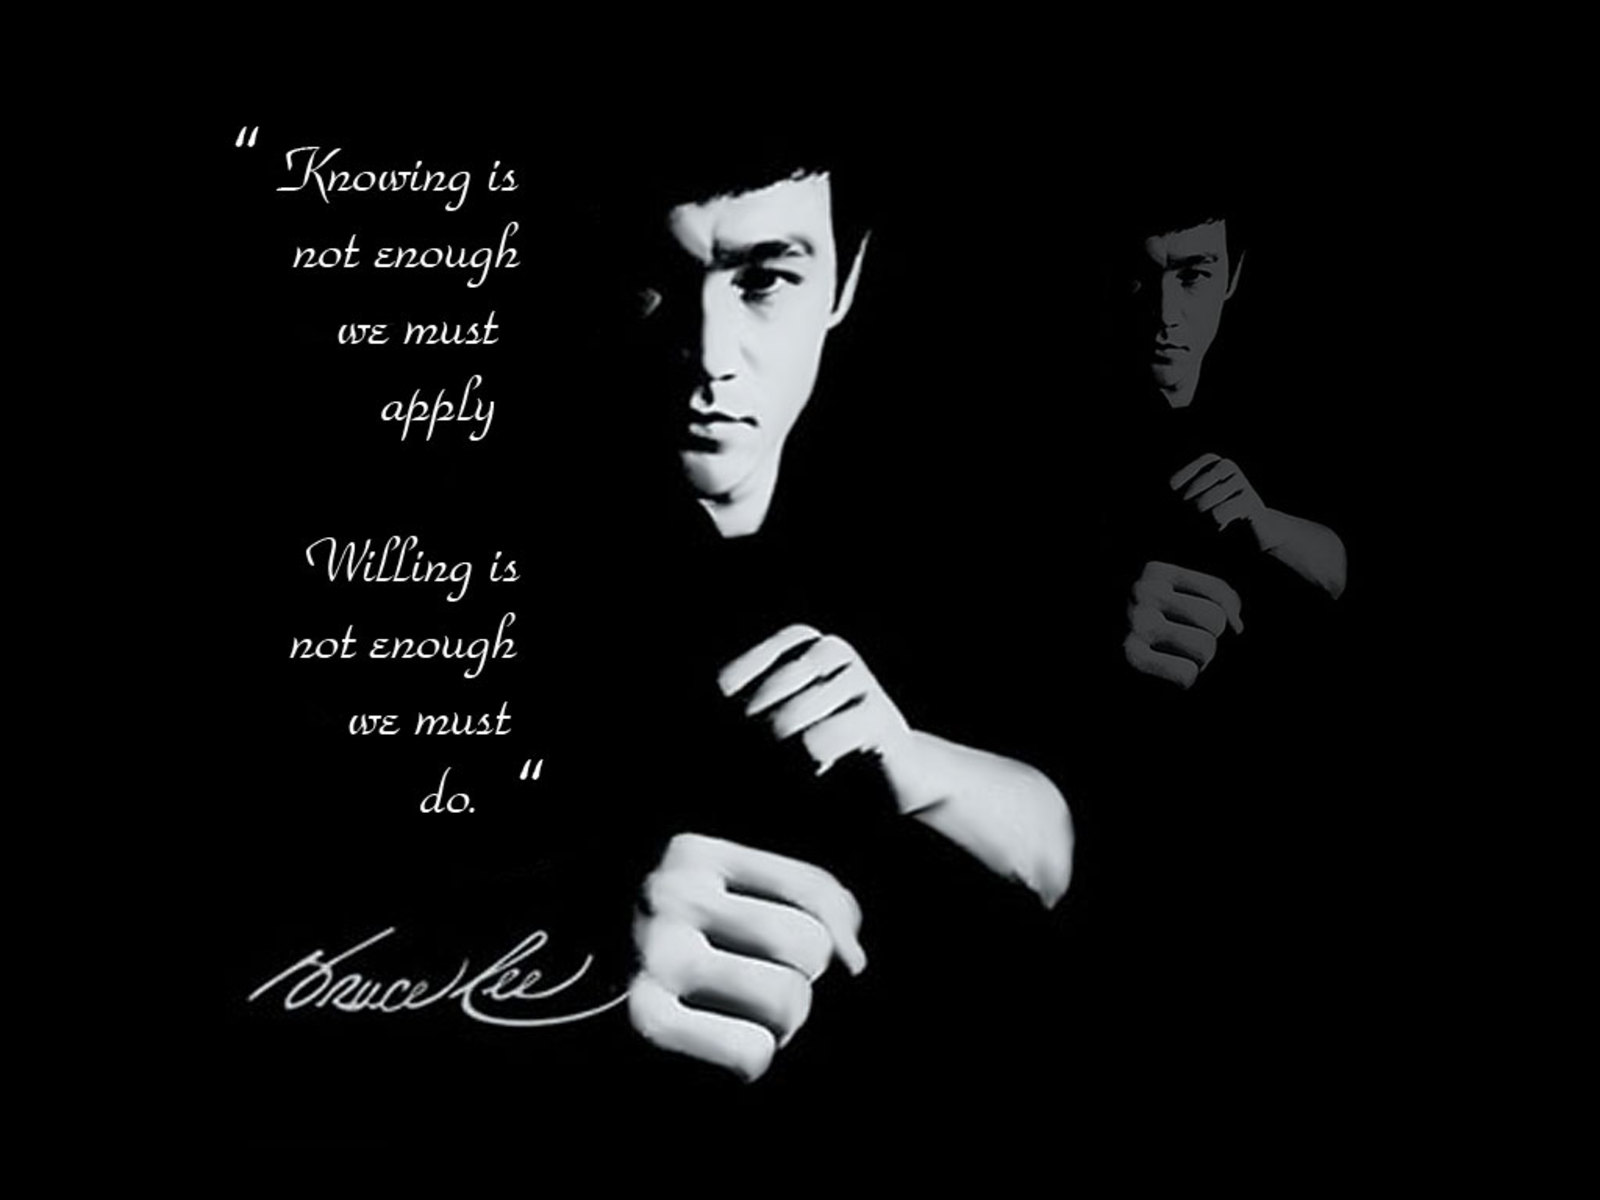 Jeet Kune Do Wallpaper Awesome Wallpapers 1600x1200